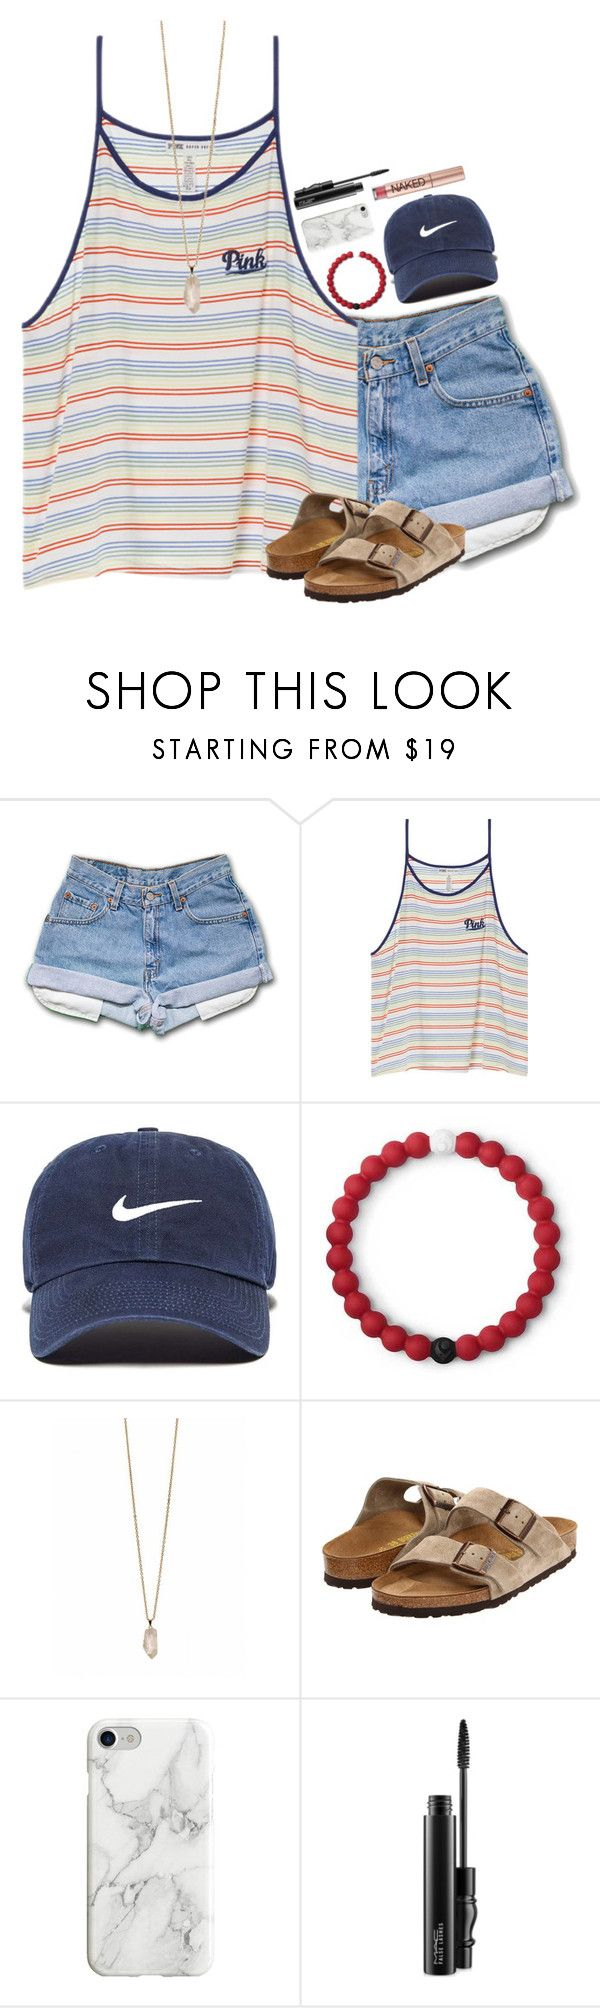 """75 and sunny"" by beingrach ❤ liked on Polyvore featuring Victoria's Secret, NIKE, Zoya, Birkenstock, Recover, MAC Cosmetics and Urban Decay"